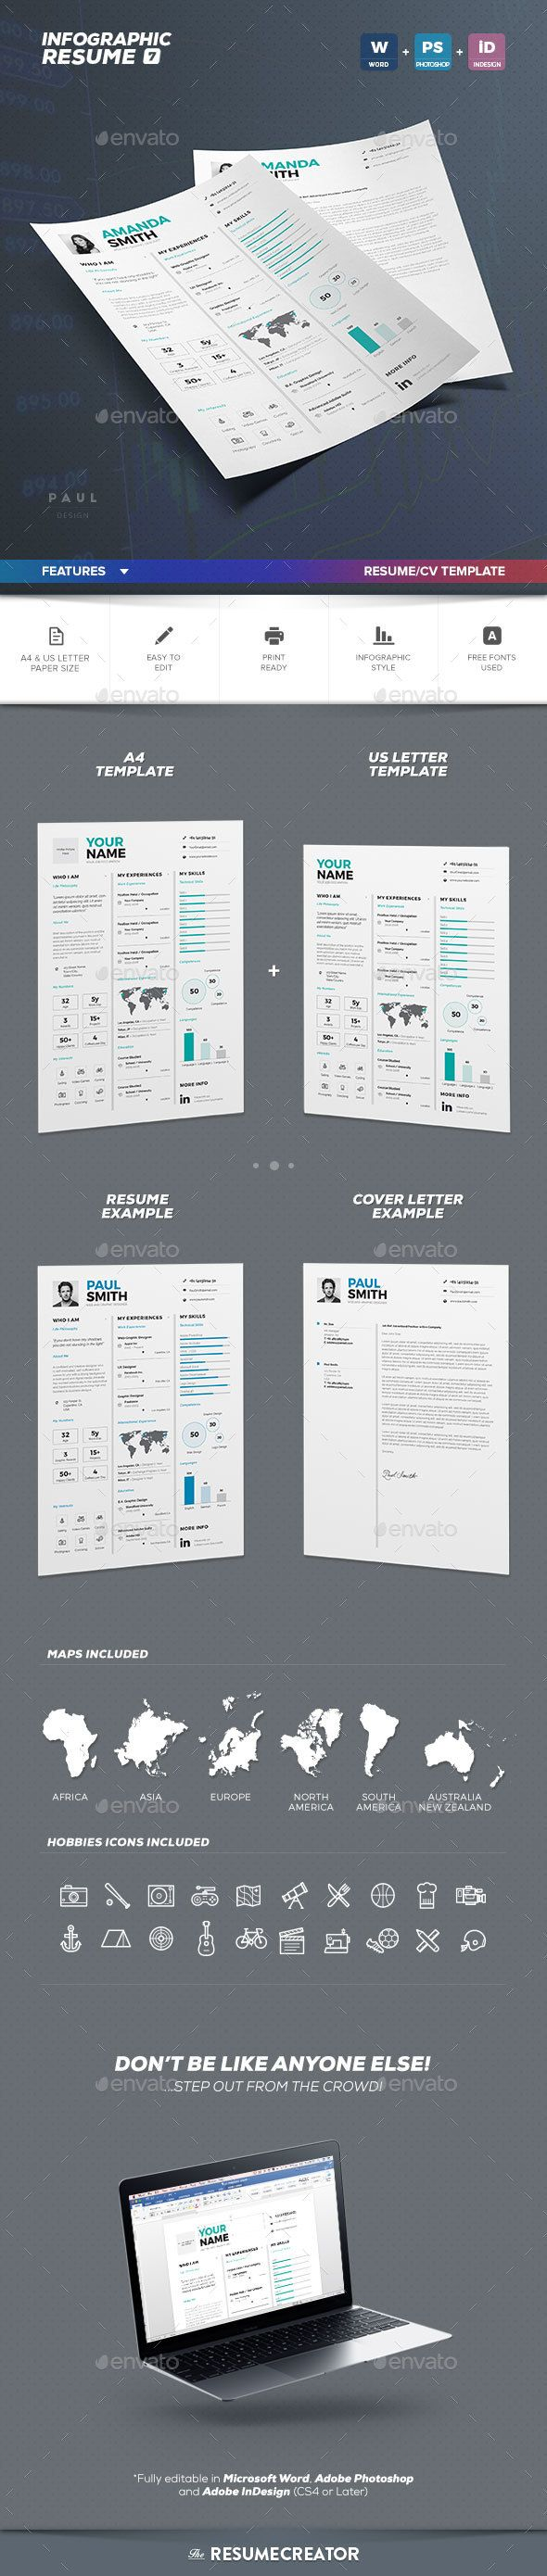 741 best Resume images on Pinterest | Resume, Curriculum and Design ...